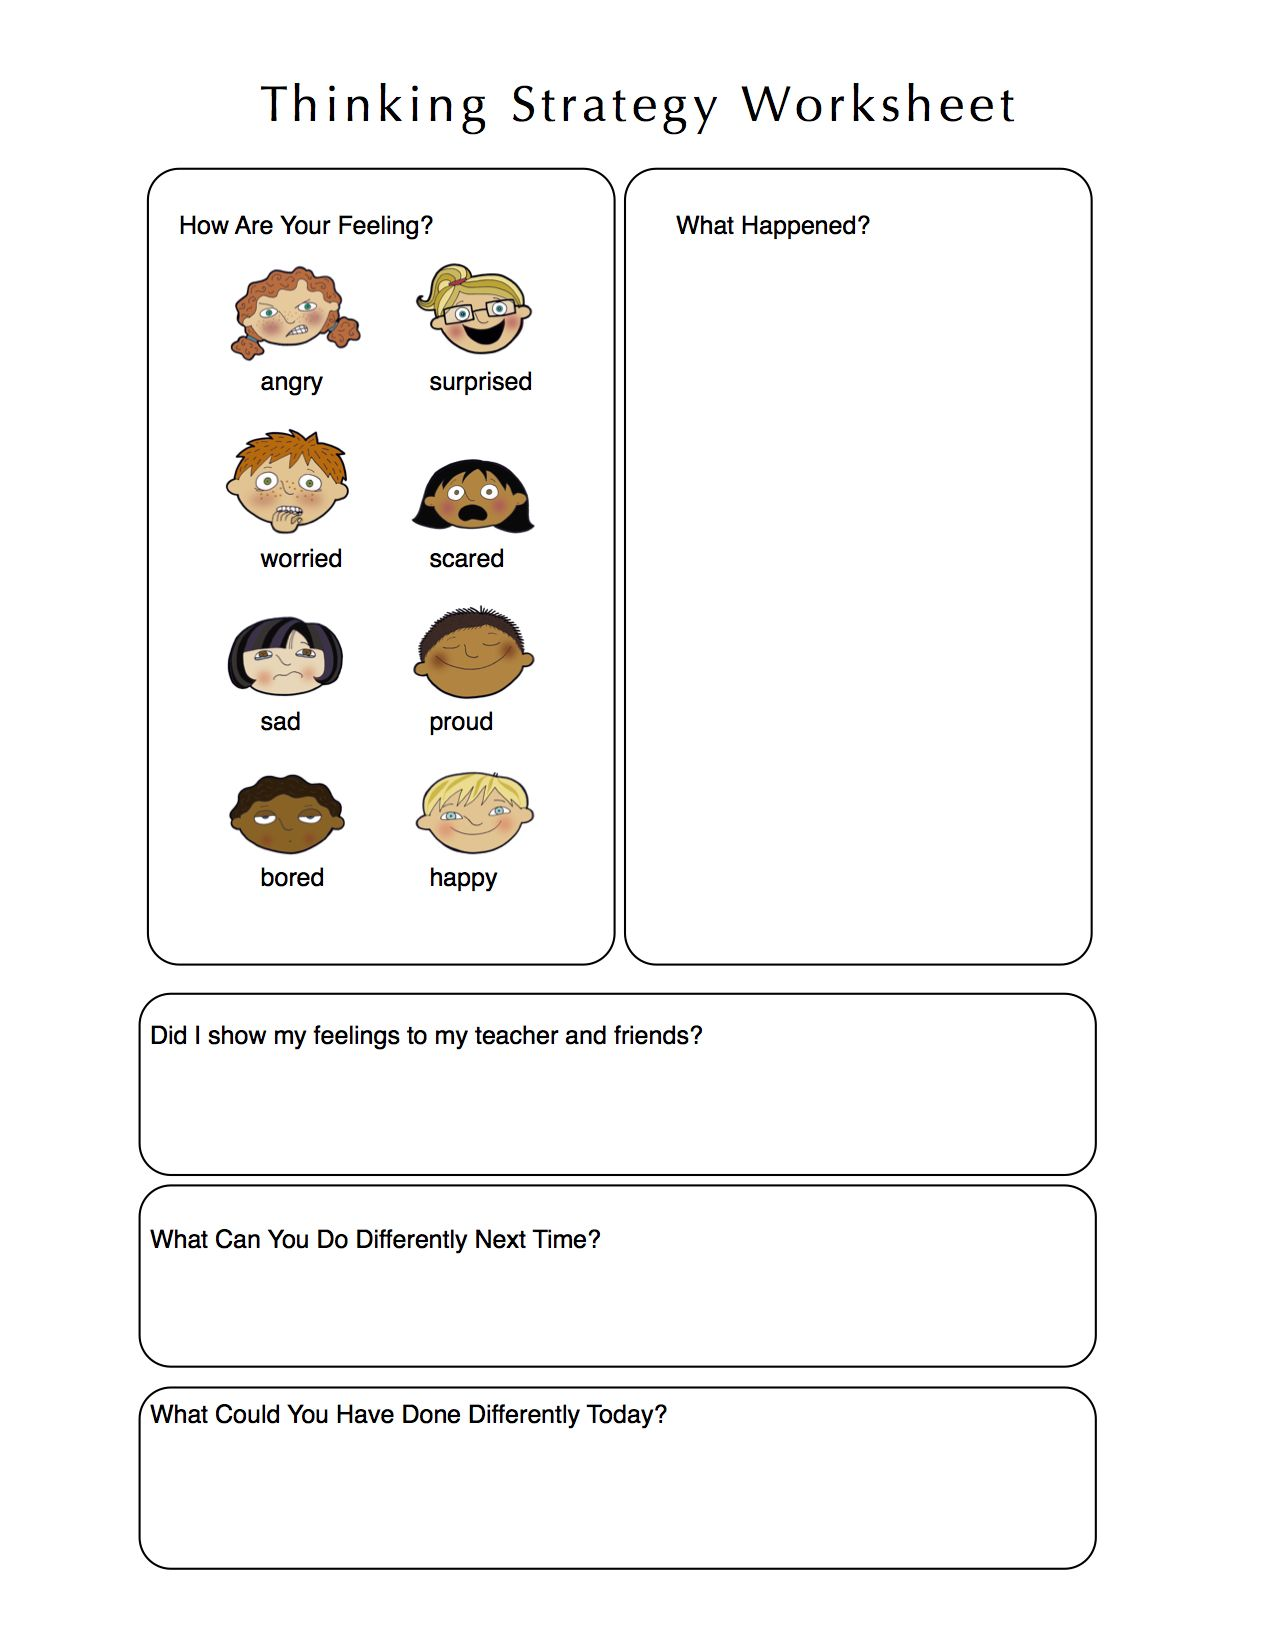 Worksheet For Kids To Think Through A Problem Using El And Reflection